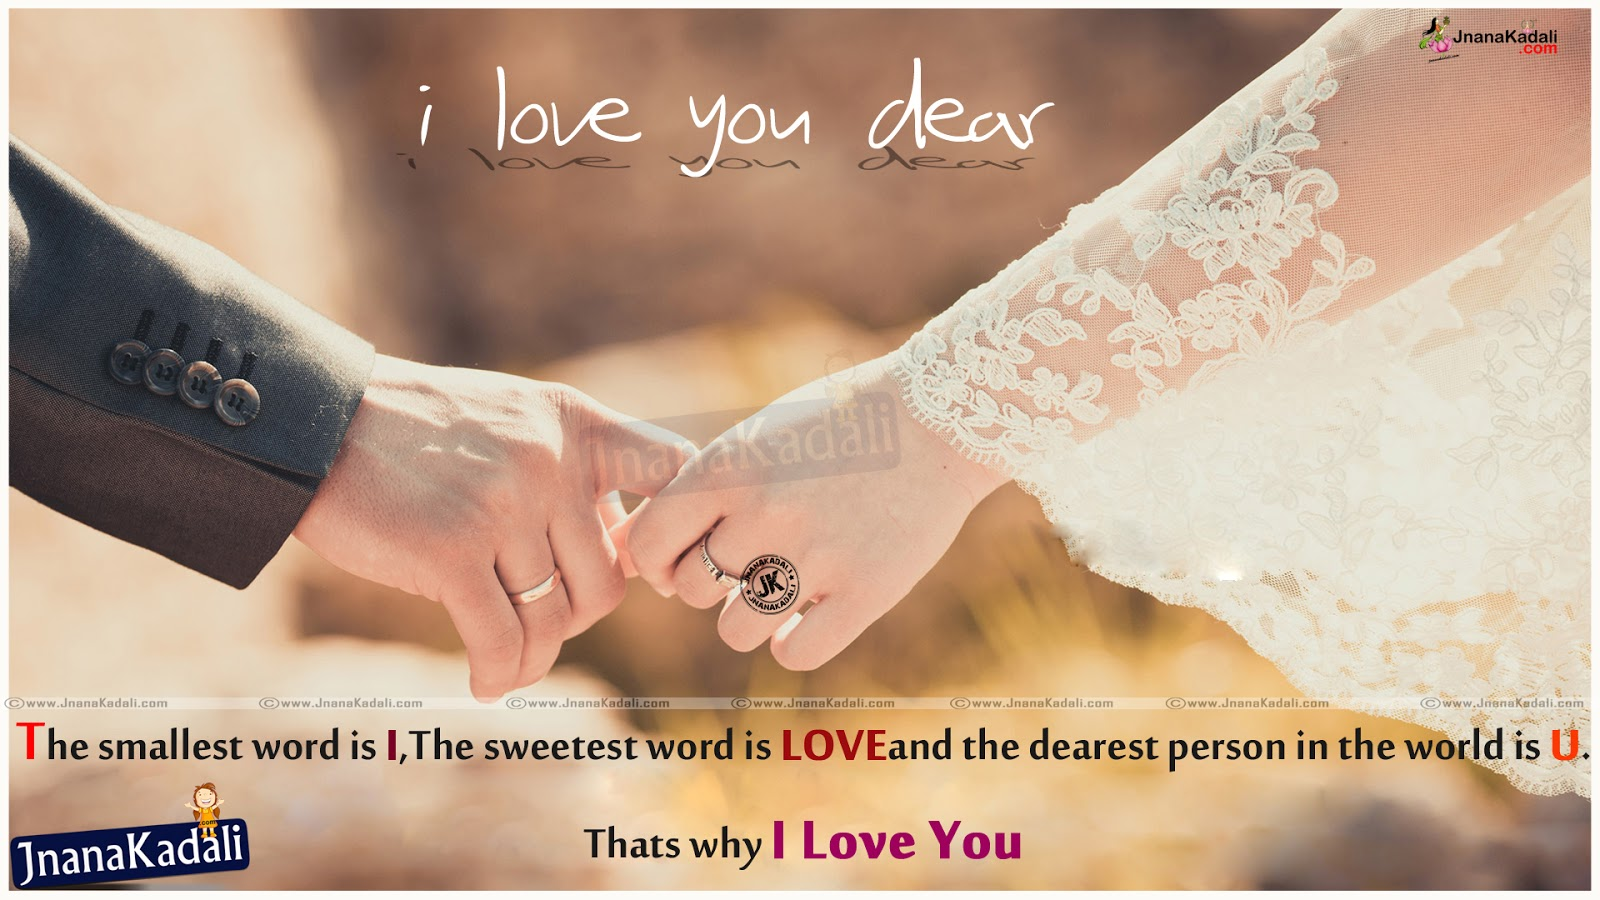 Beautiful Love Quotations and Messages Wallpapers Cute Girl Love Messages and Sayings English Beautiful Love Quotations for True Lover